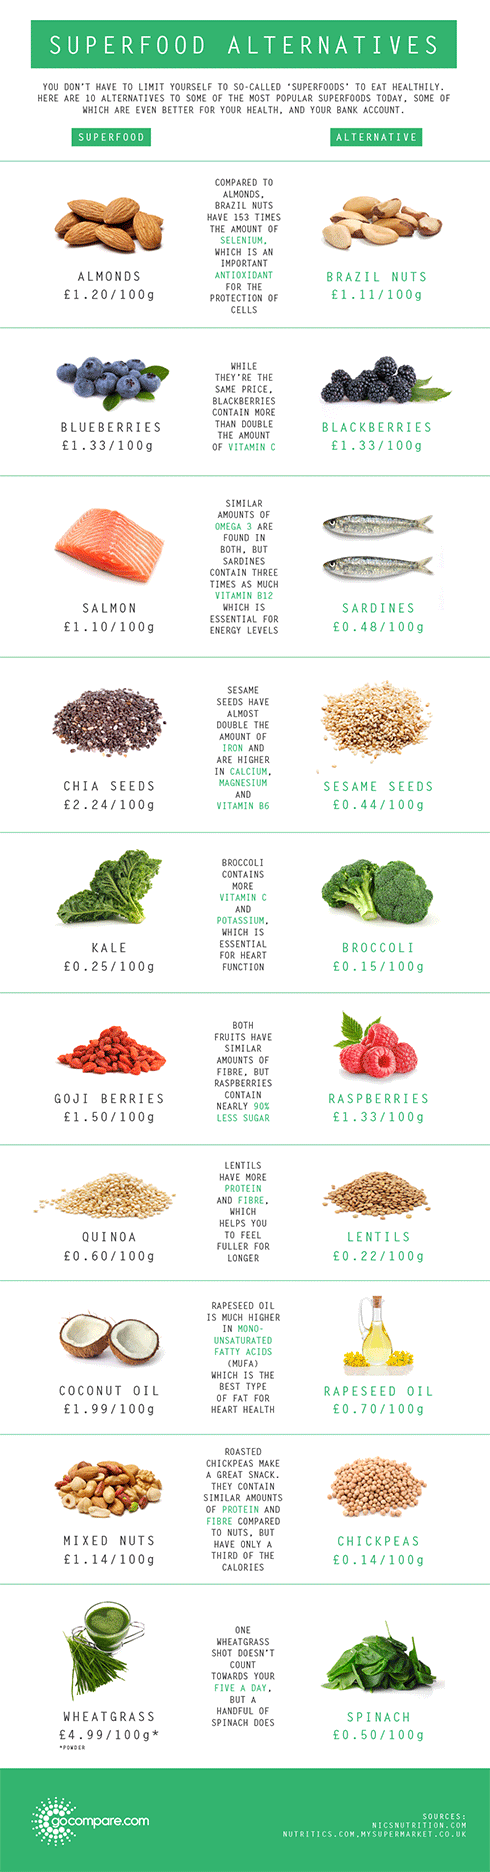 superfood alternatives infographic